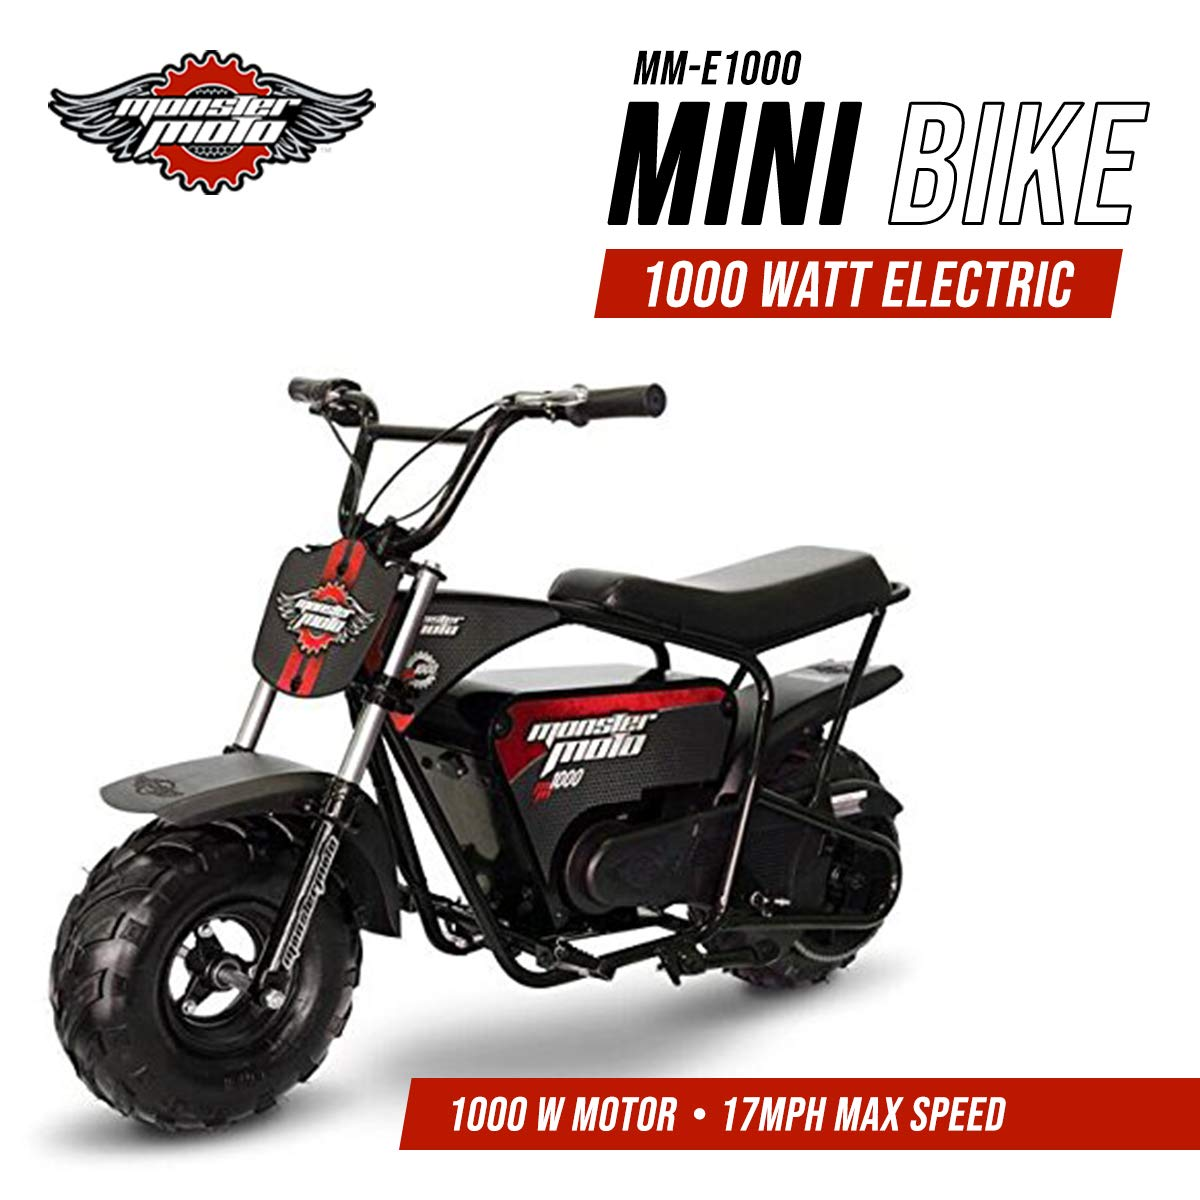 Monster Moto Mm E1000 Brm Electric Mini Bike With Mag Cool Sport Pocket Wiring Diagram Wheels Assembled In The Usa 1000 Watt Black Automotive